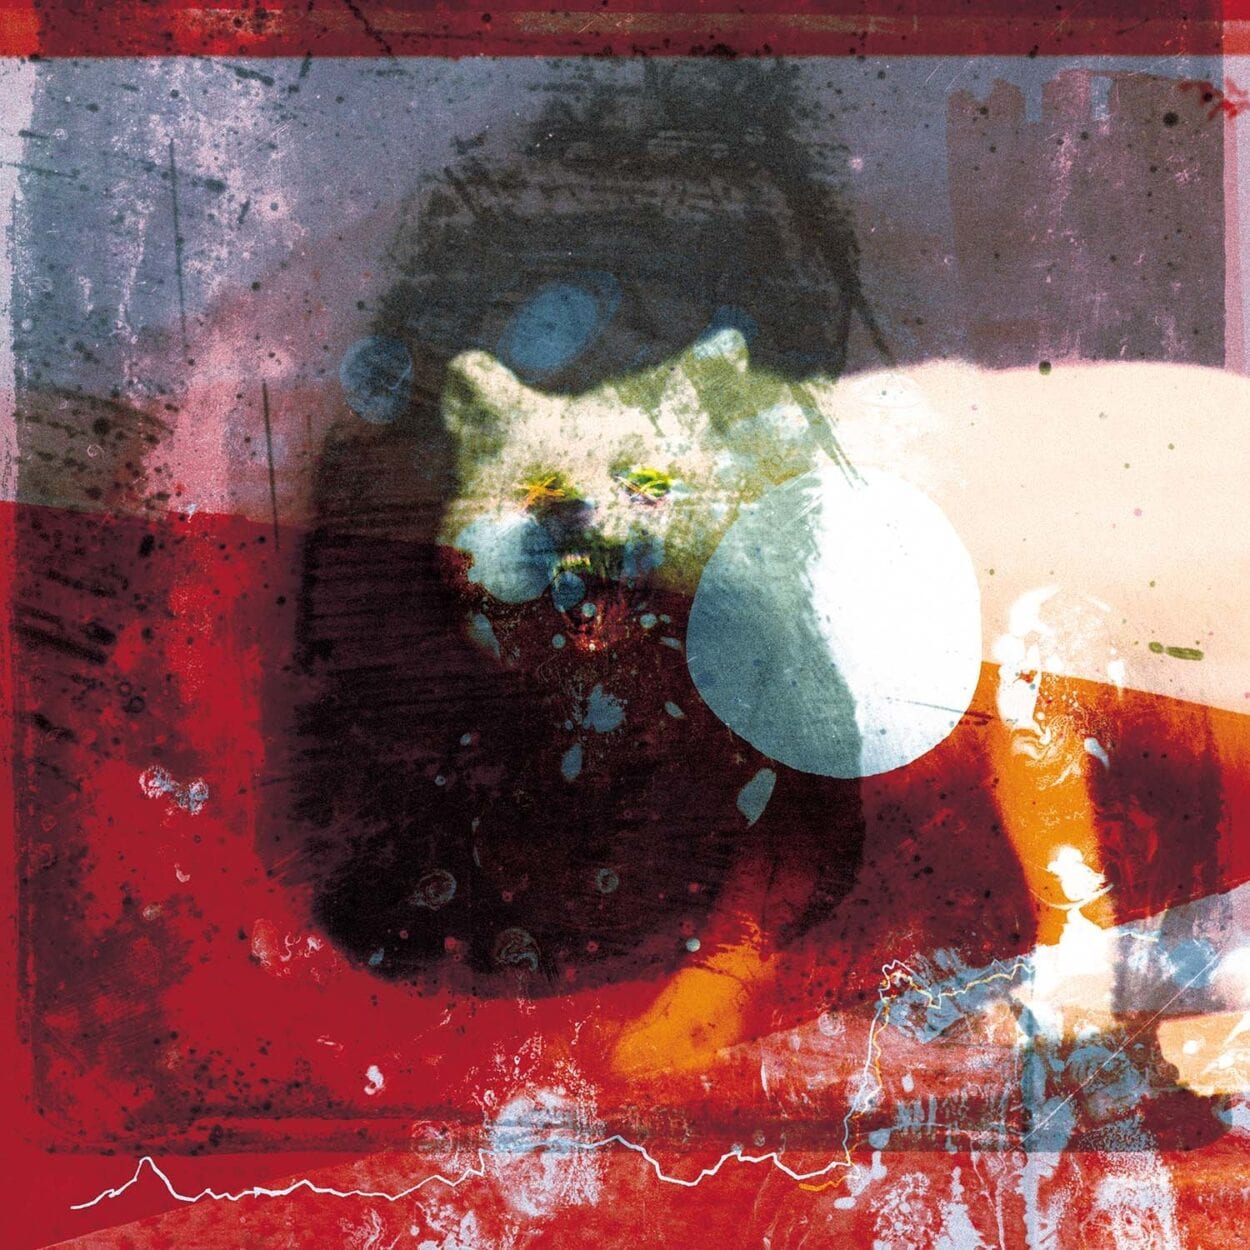 Mogwai - As the Love Continues cover art featuring wolf looking at the viewer, with a red abstract painting superimposed